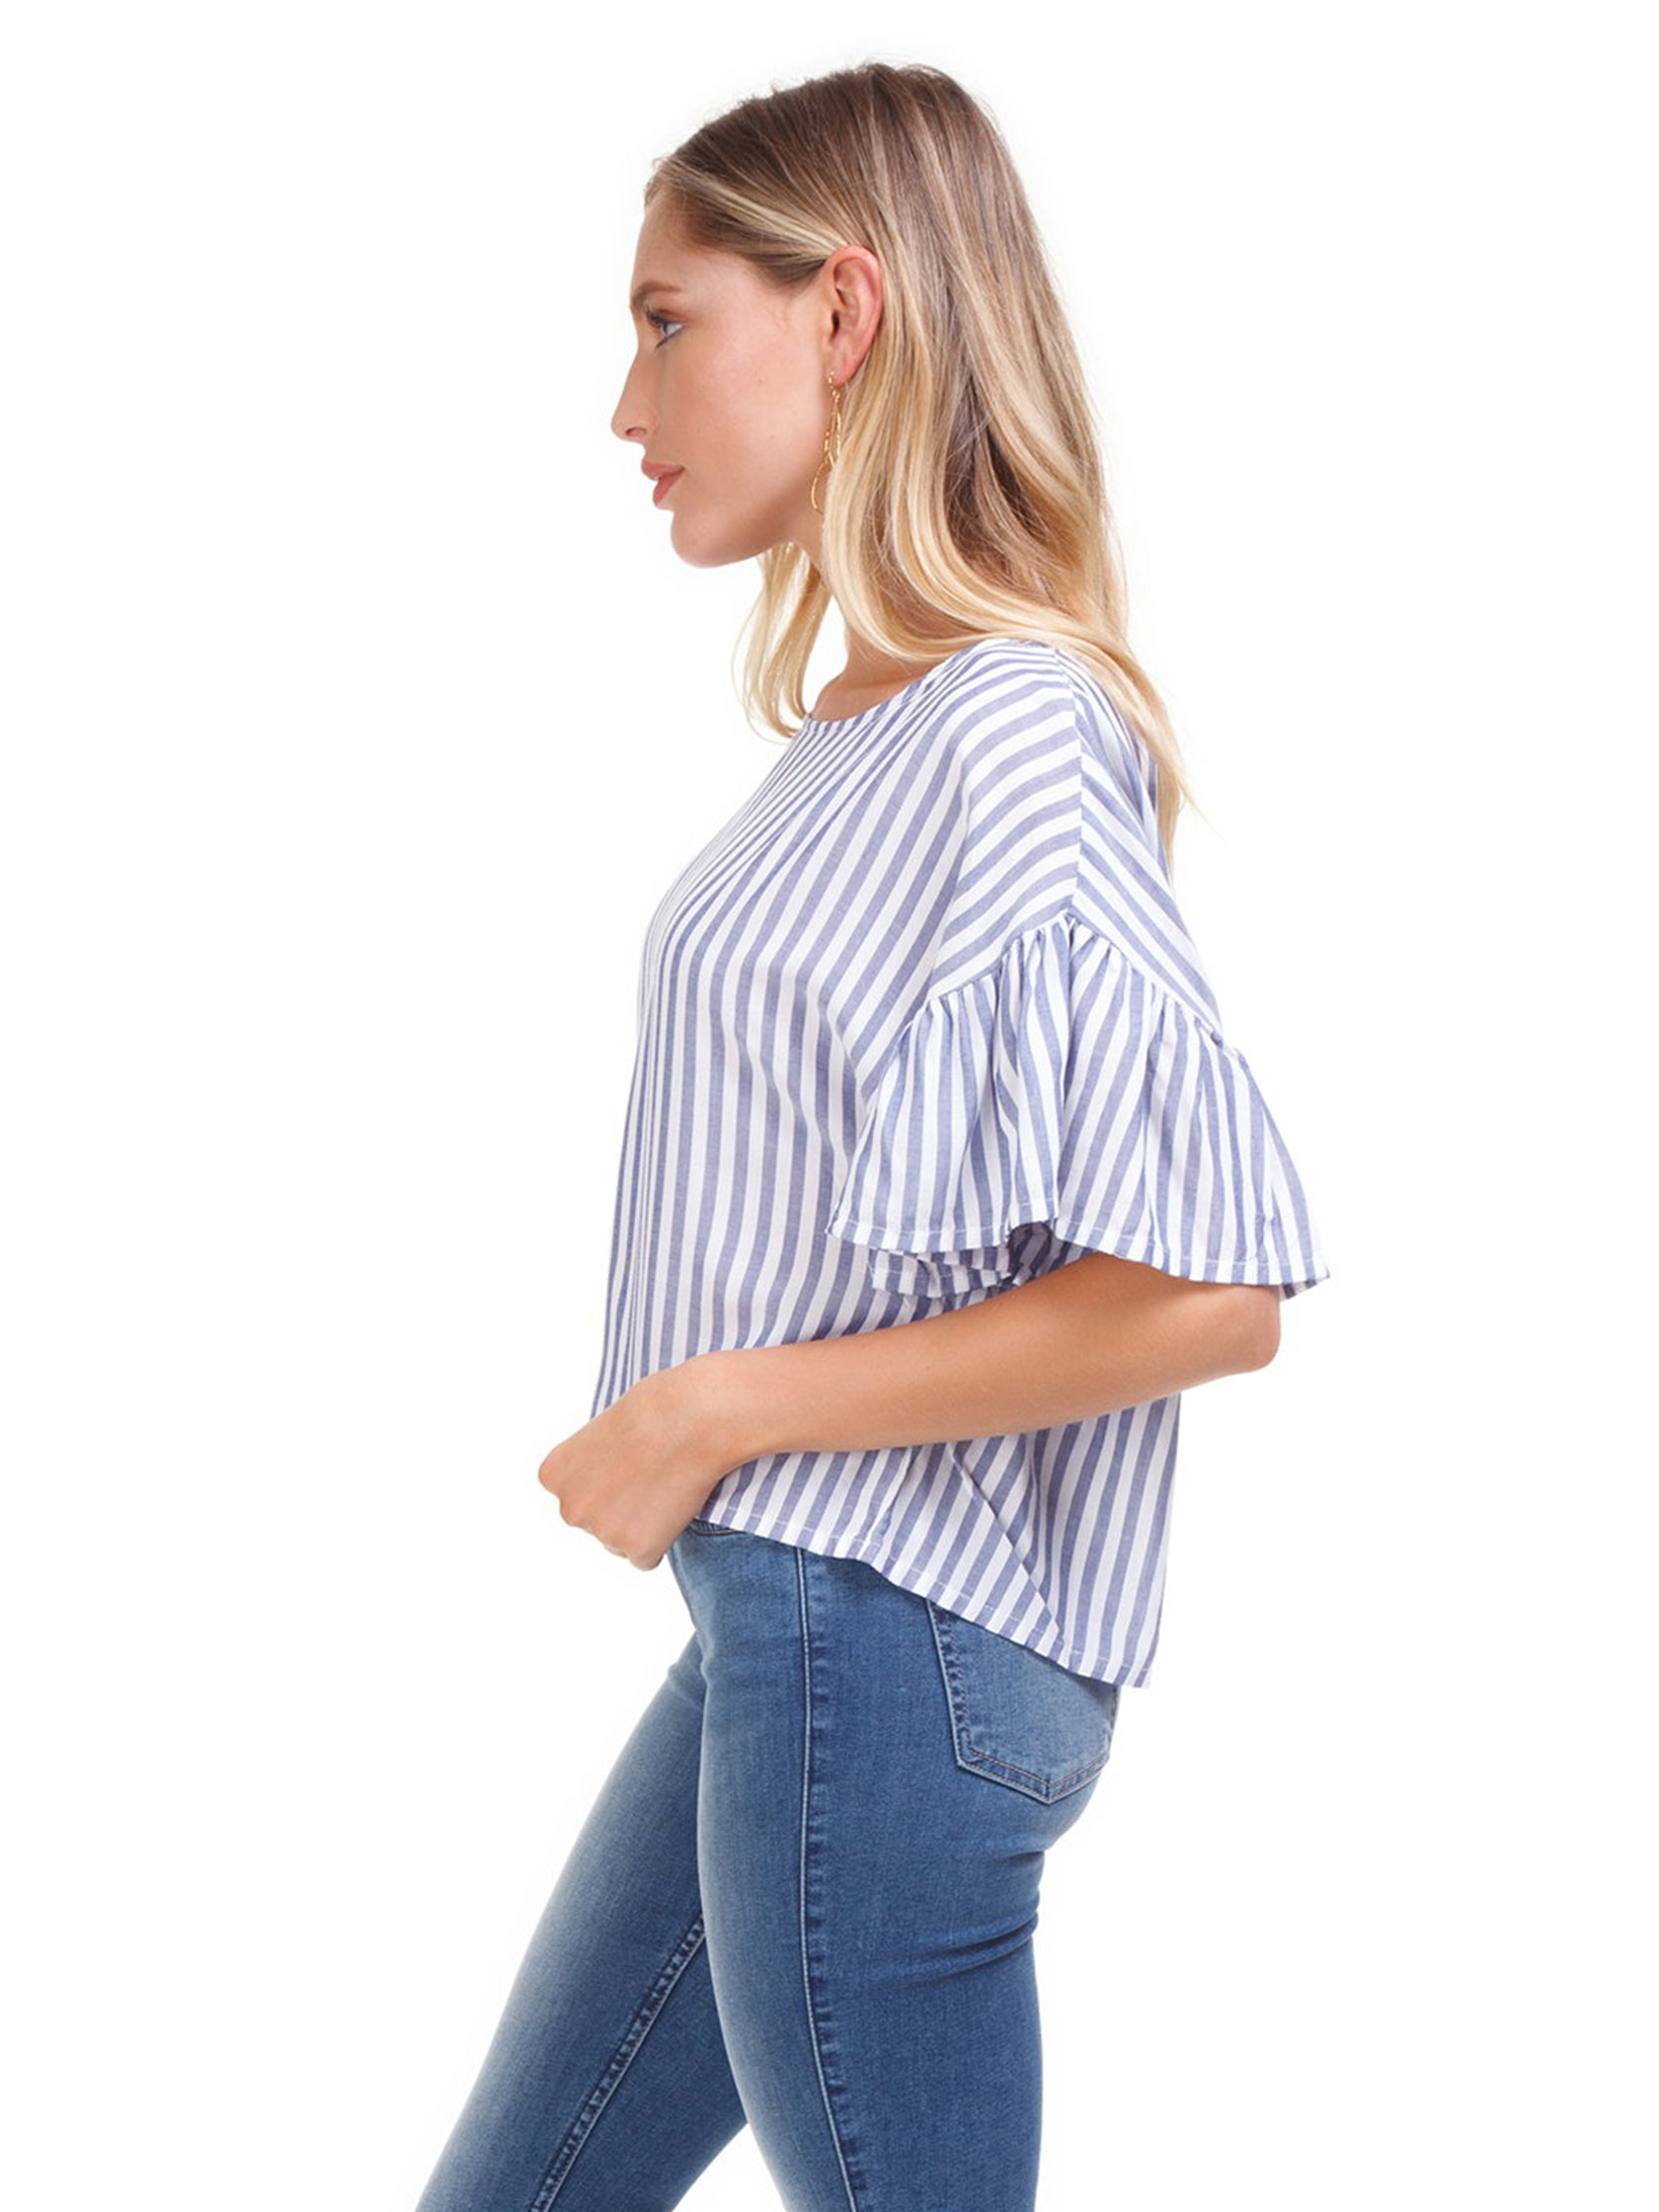 Women wearing a top rental from MINKPINK called Road Trip Stripe Top